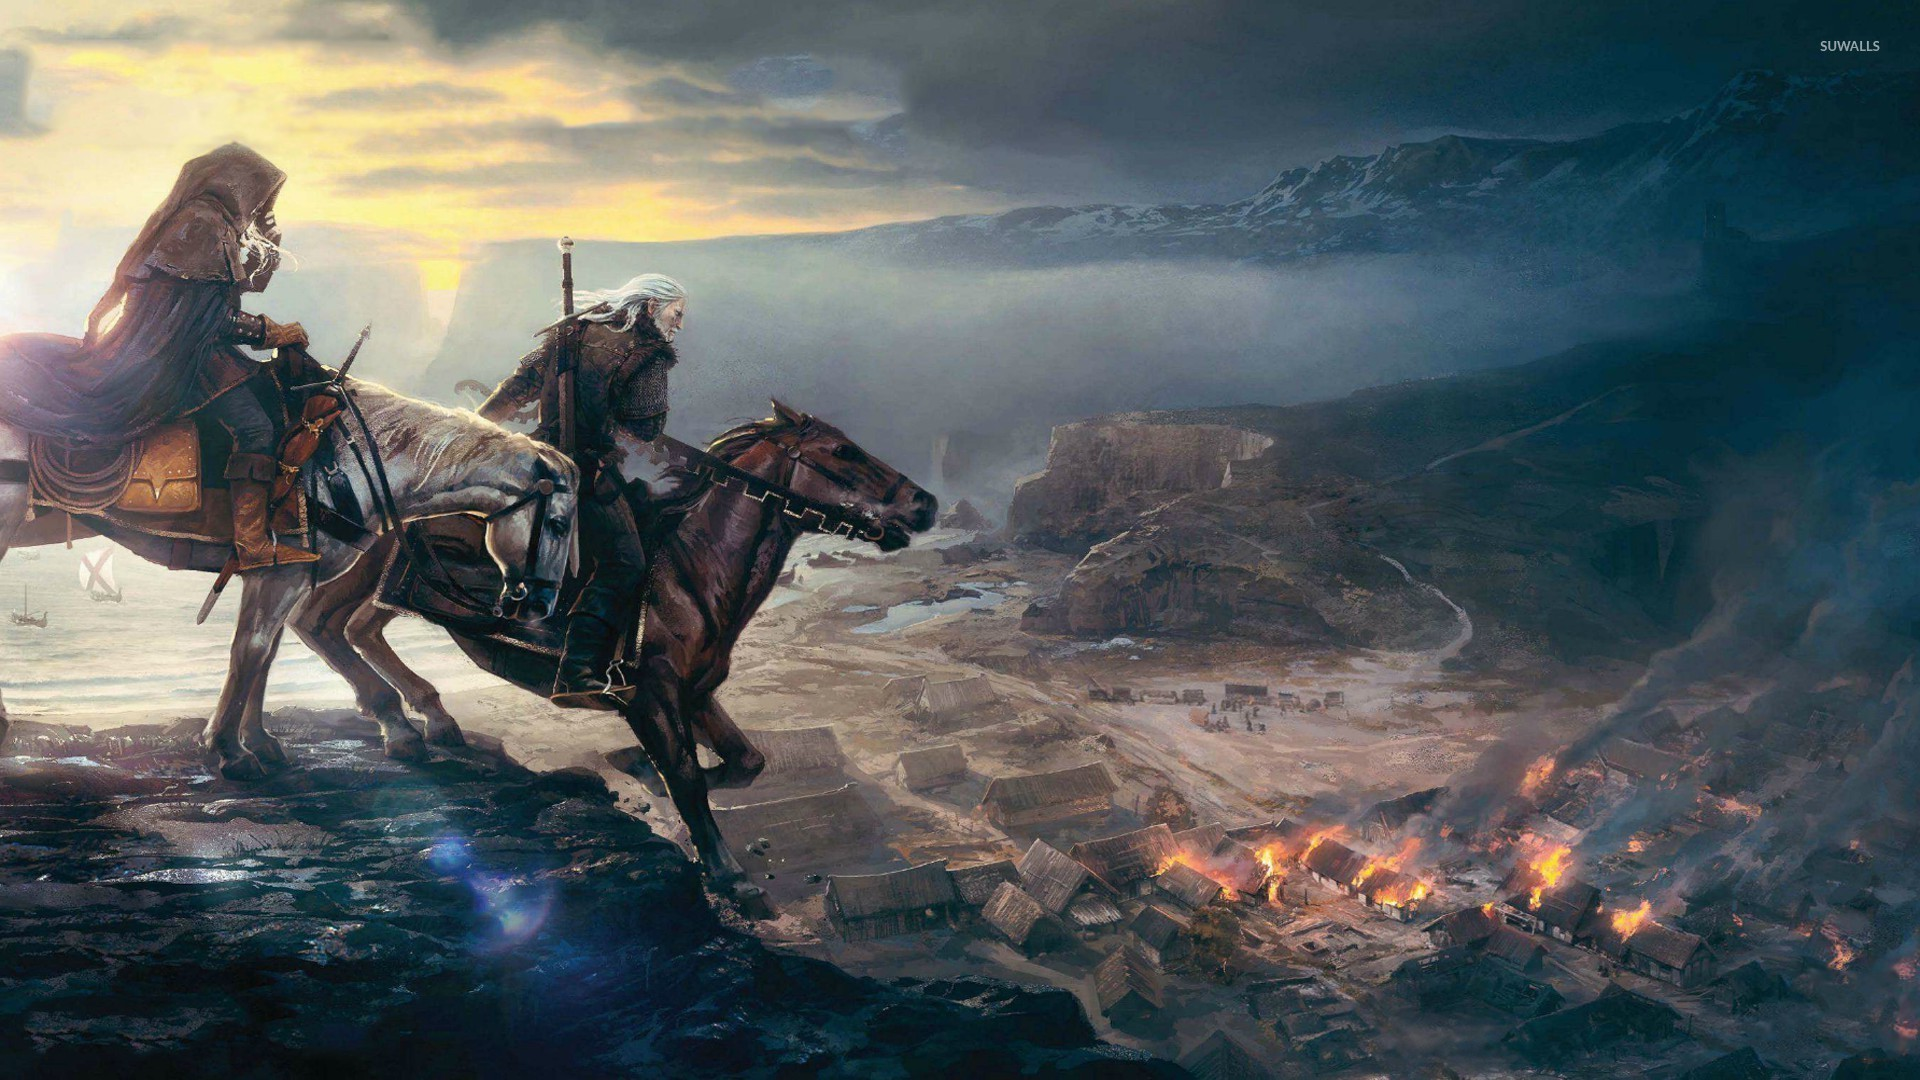 The Witcher 3 Wild Hunt Wallpaper Game Wallpapers 21458